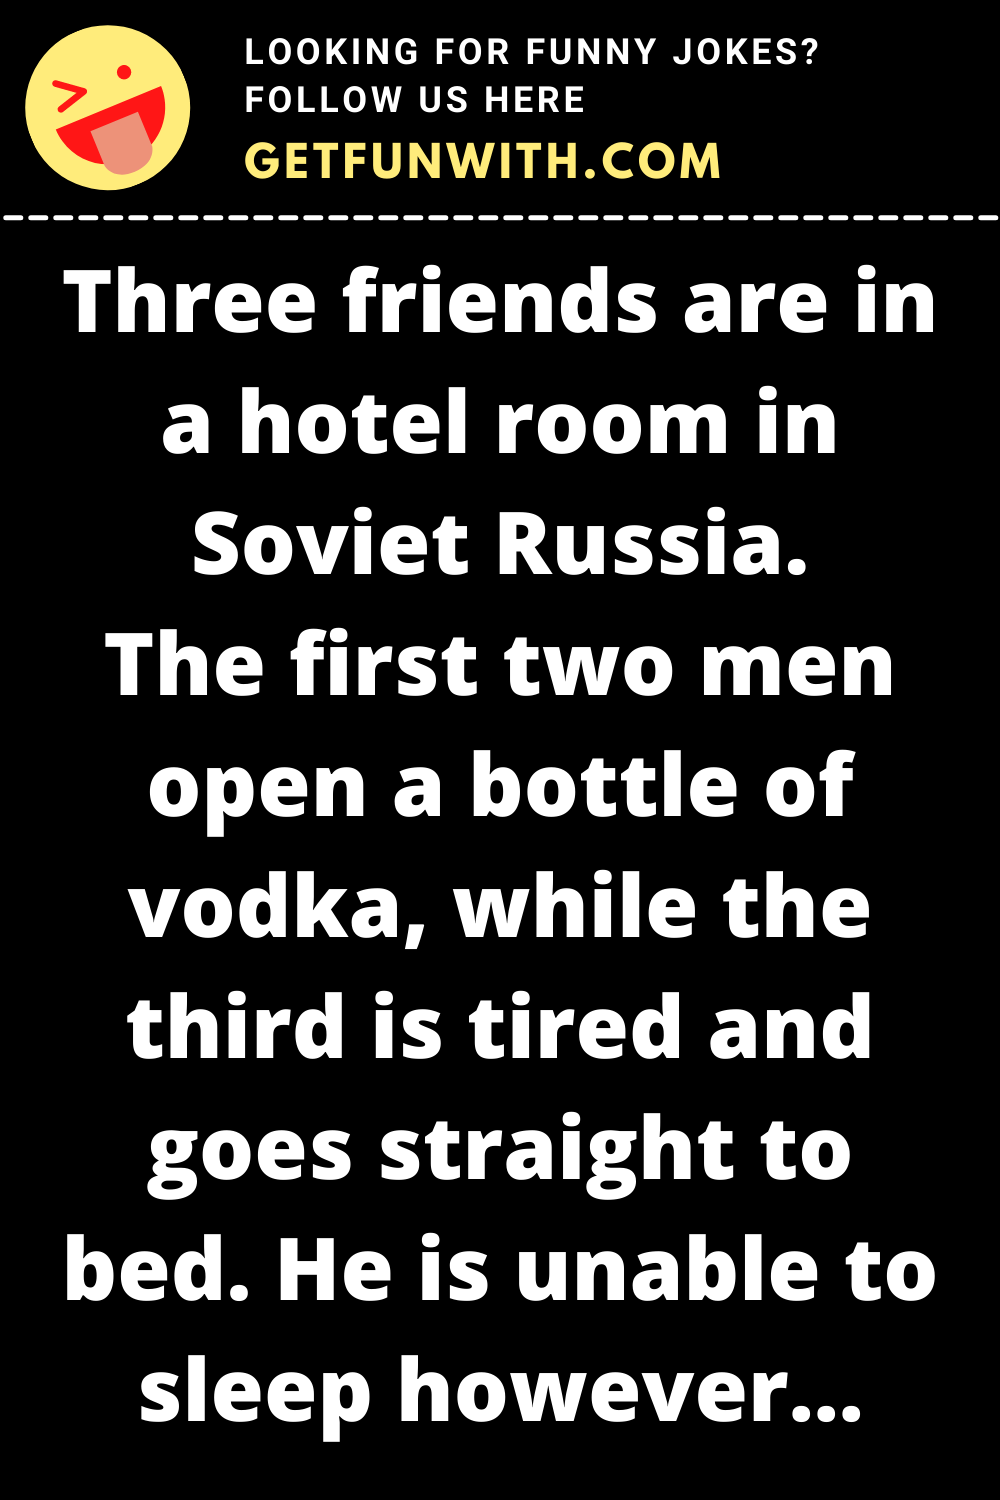 Three friends are in a hotel room in Soviet Russia.